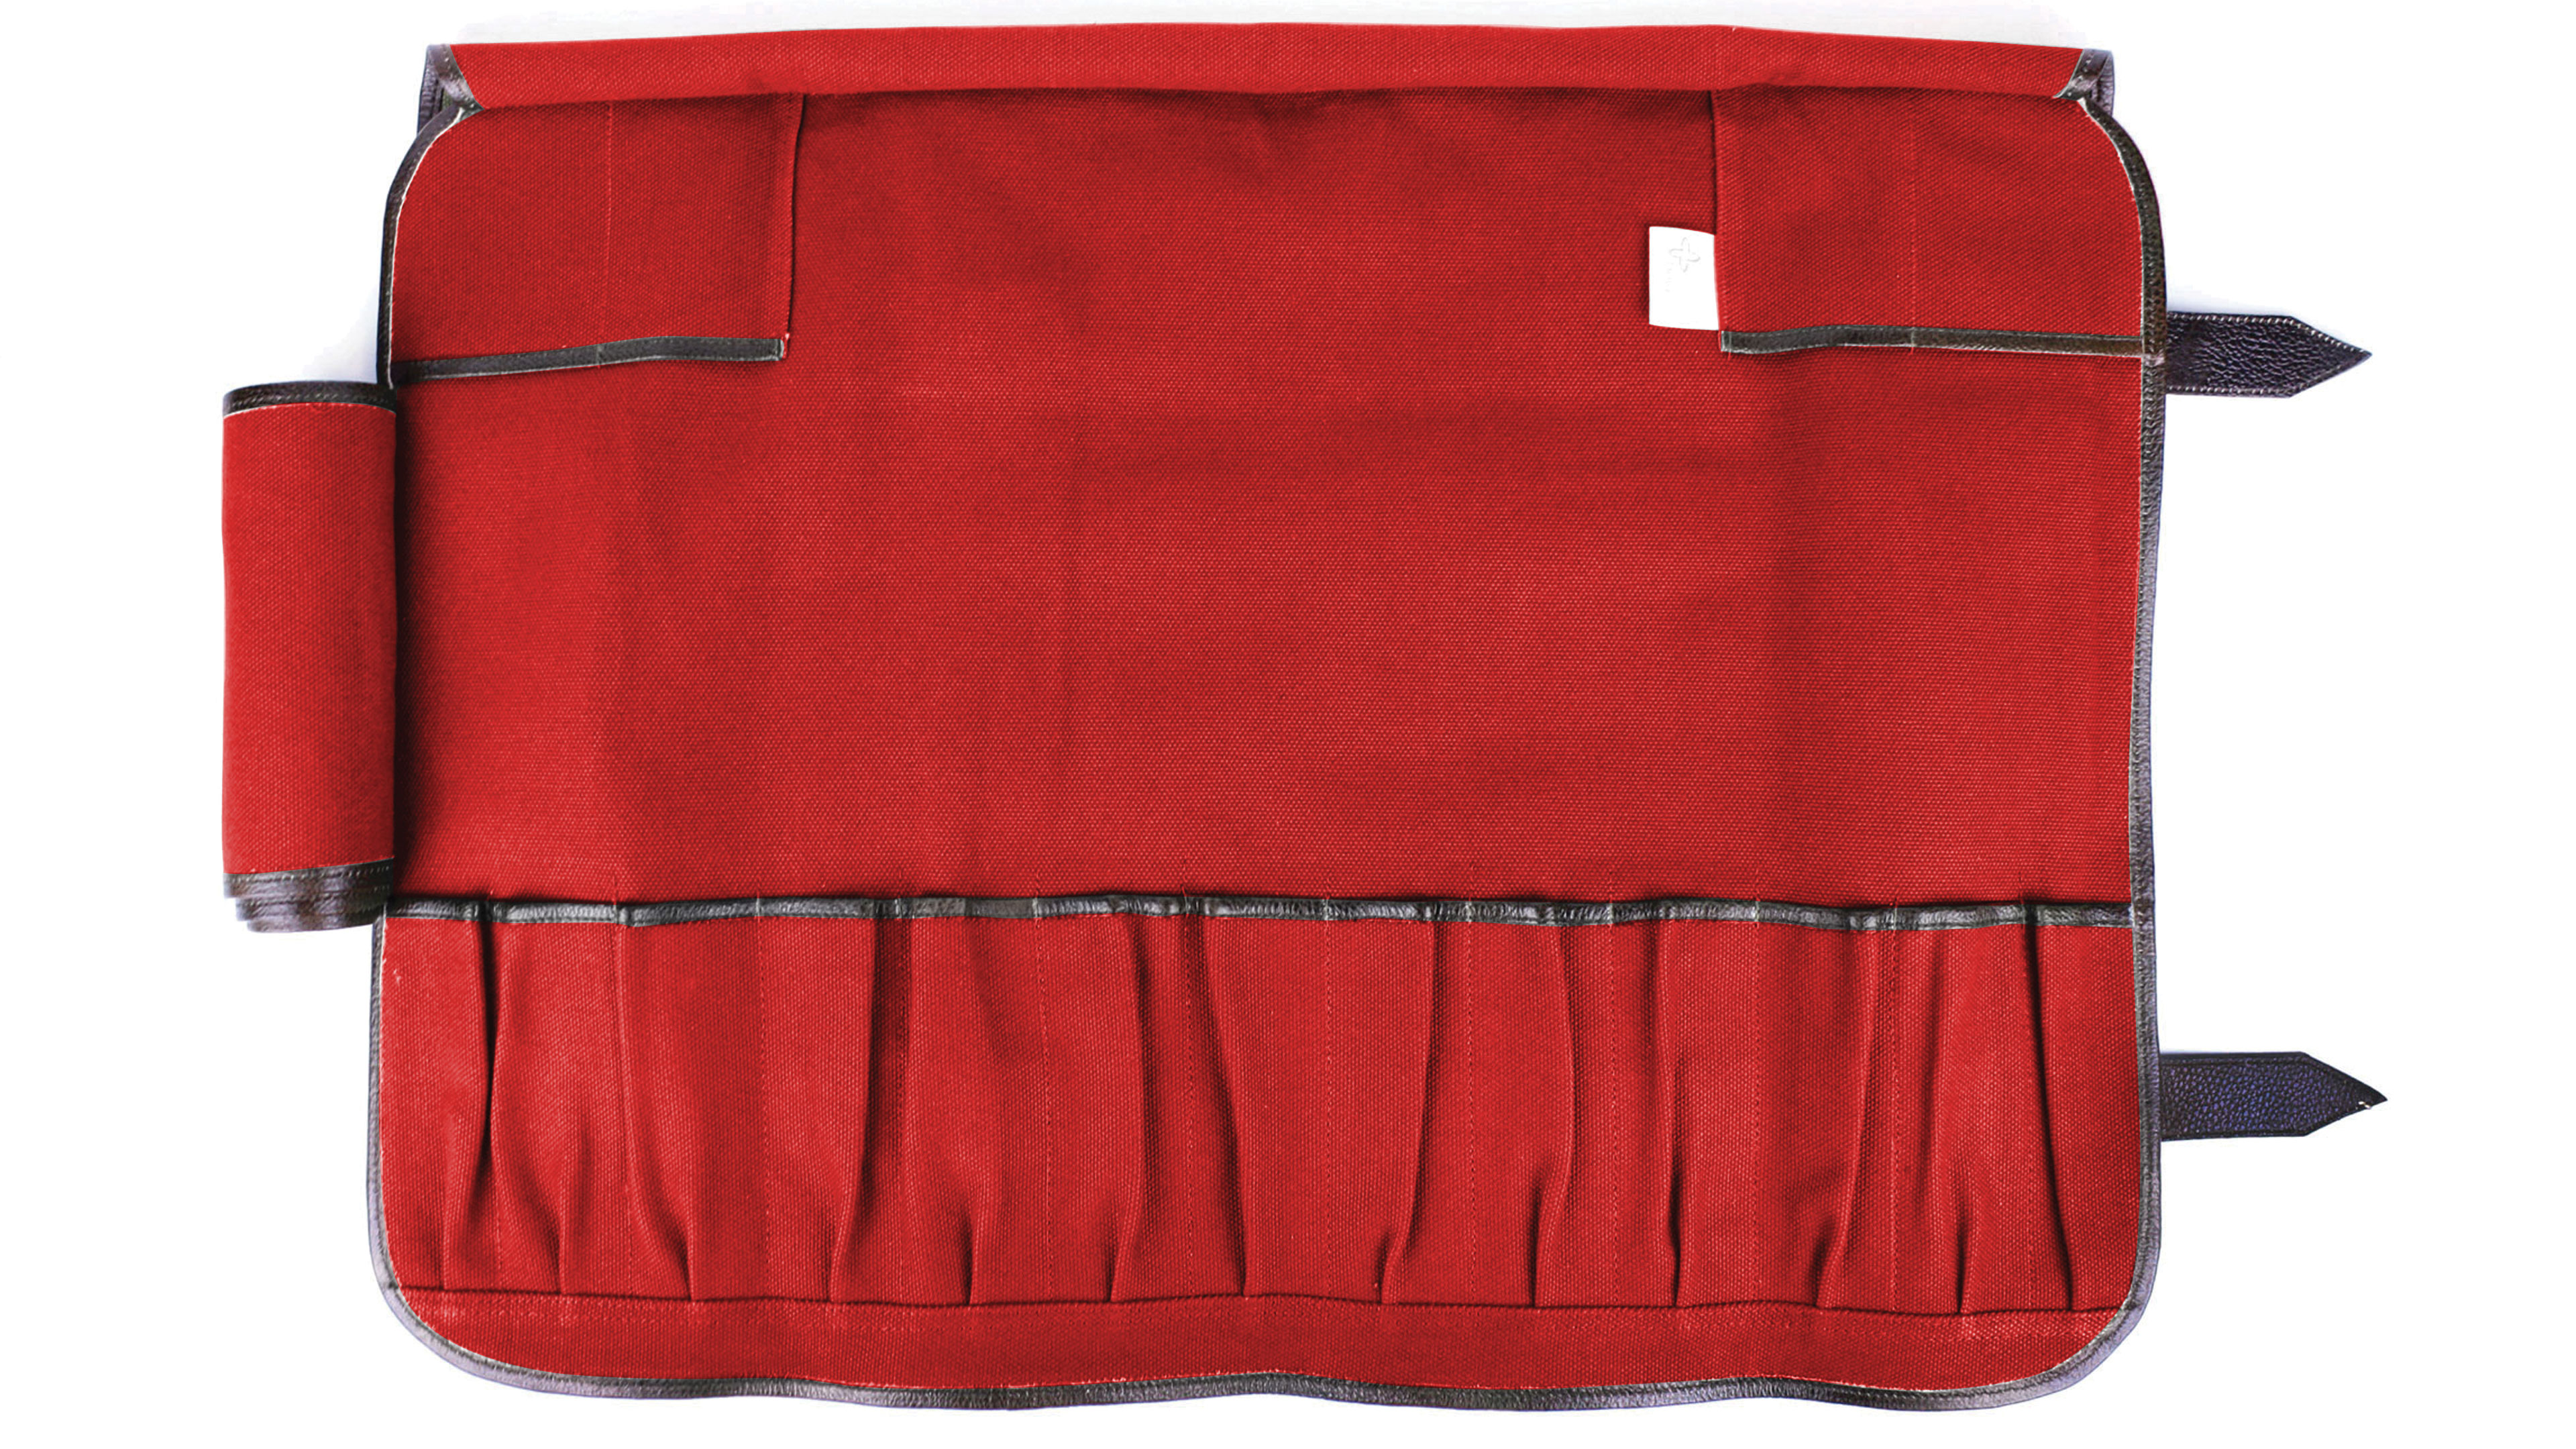 Boldric Canvas Knife Bag 17 Pocket Red Cutlery And More